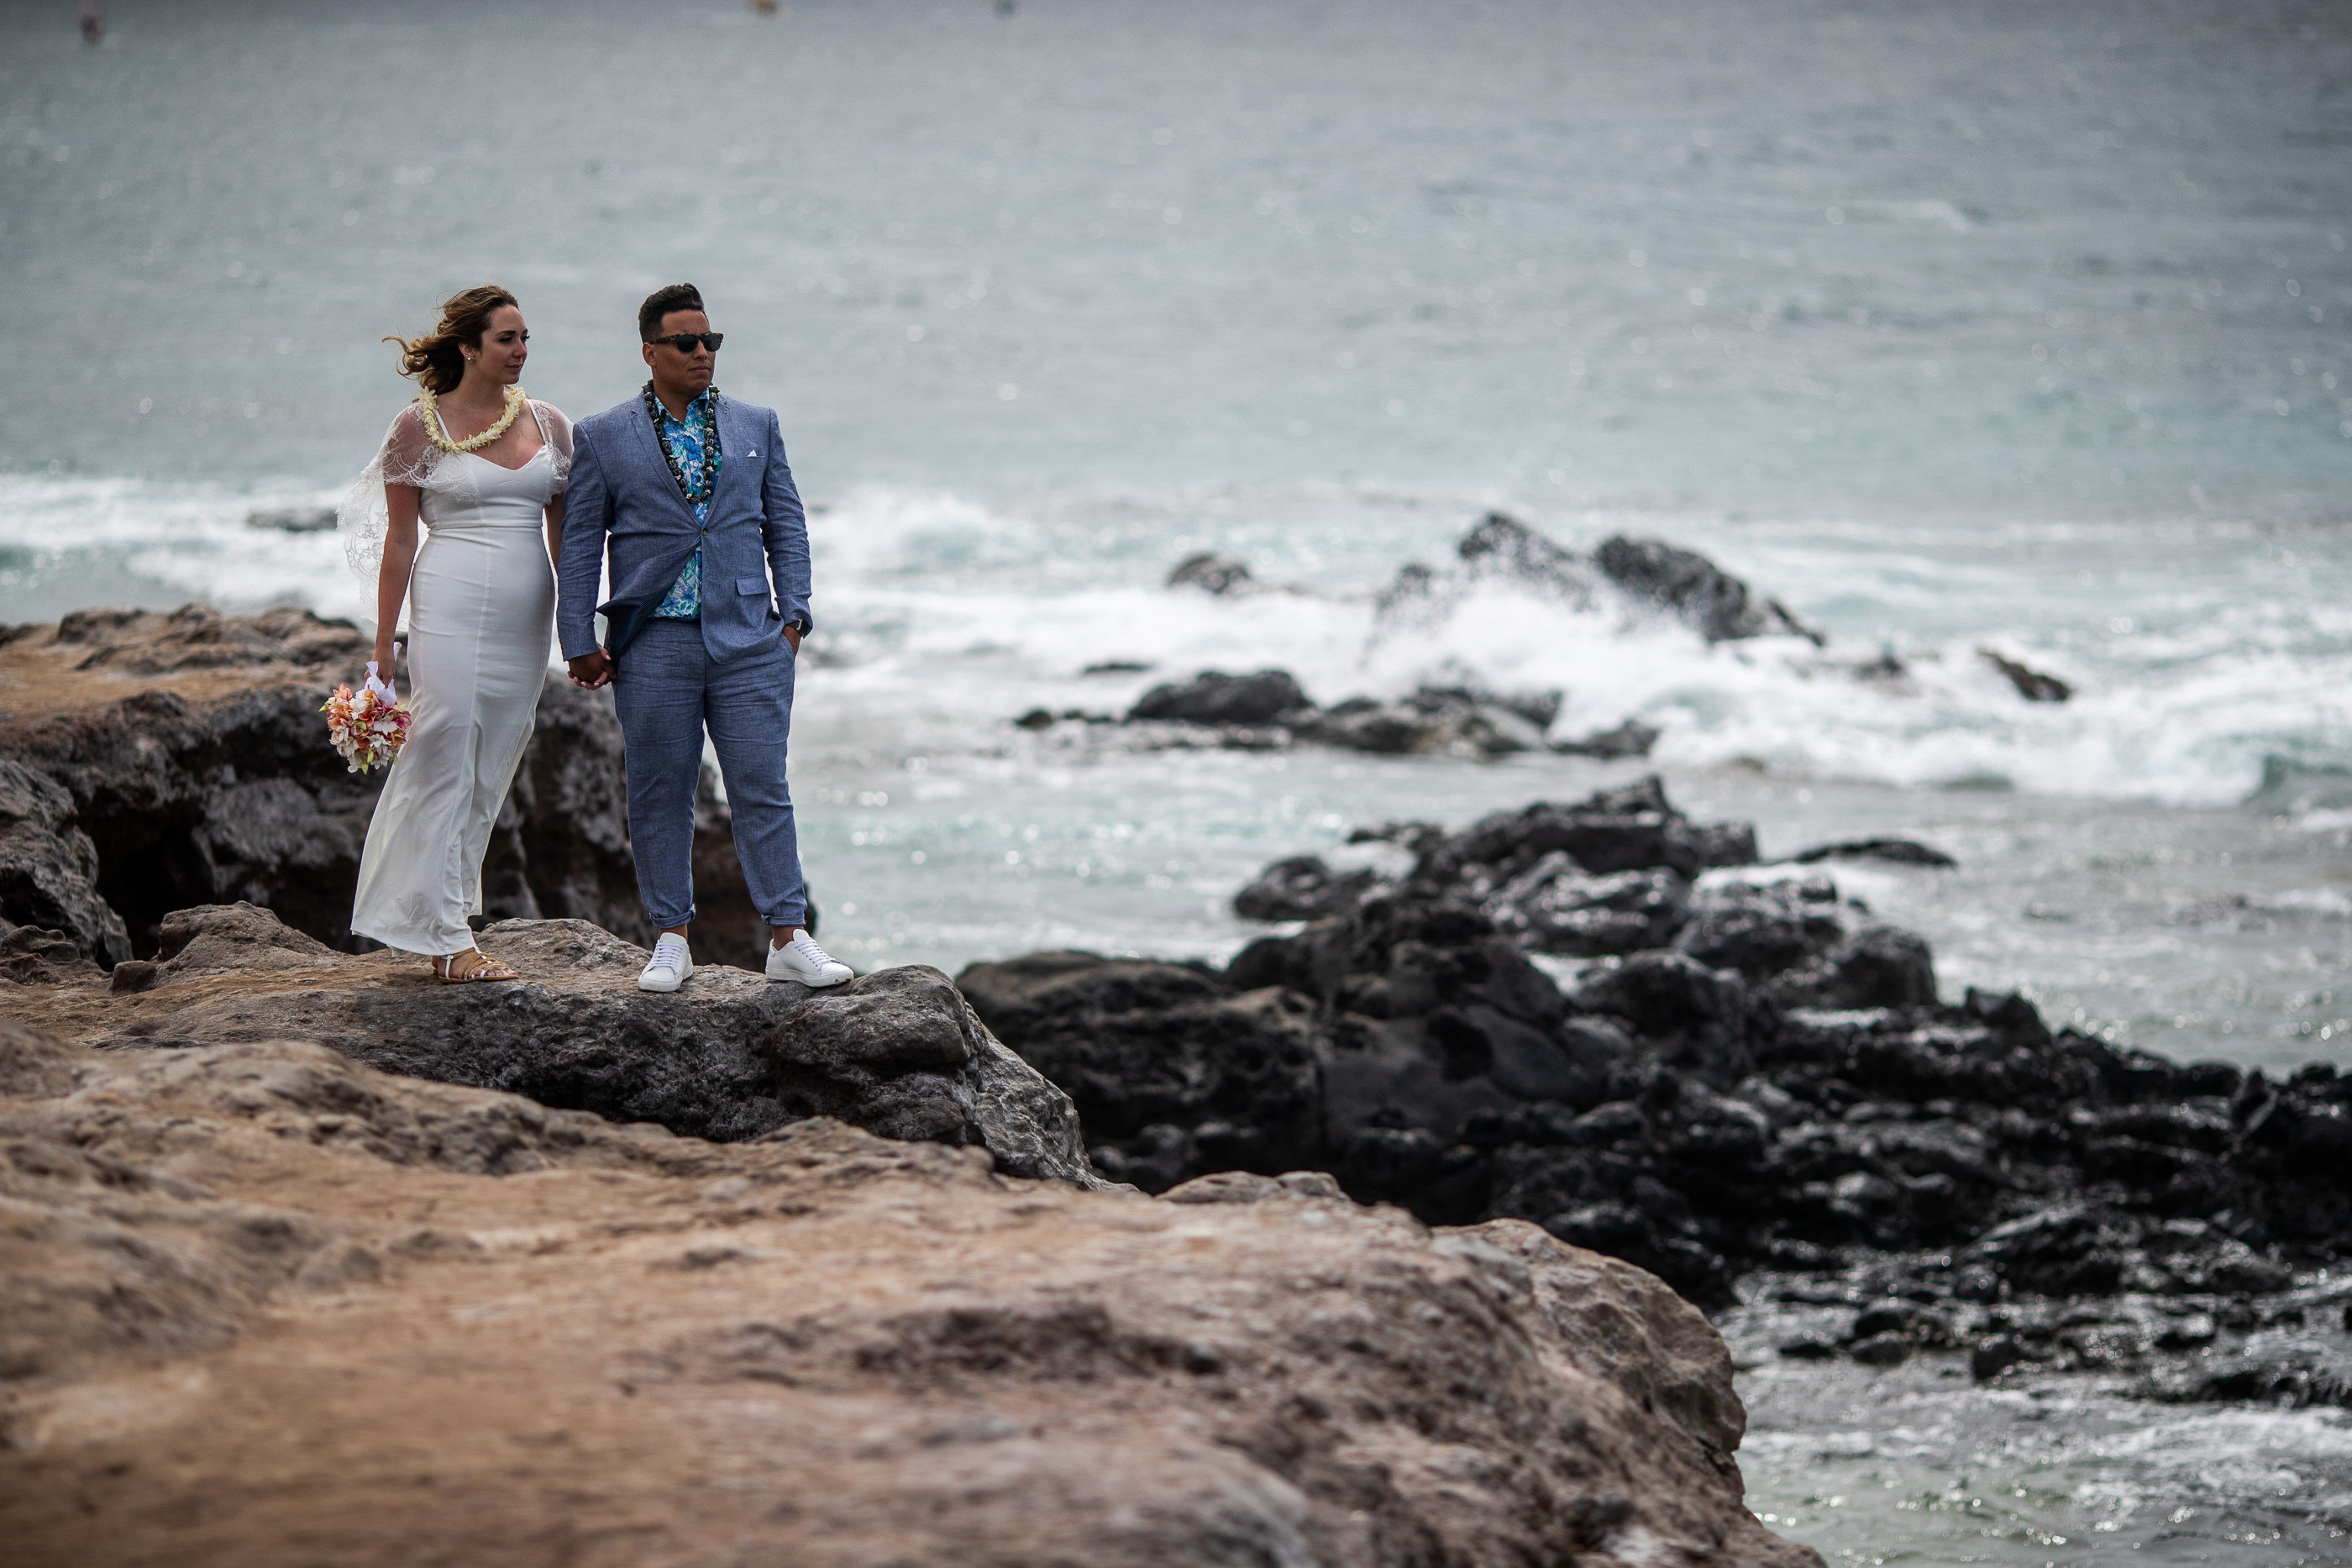 Planning a Destination Wedding in Hawaii